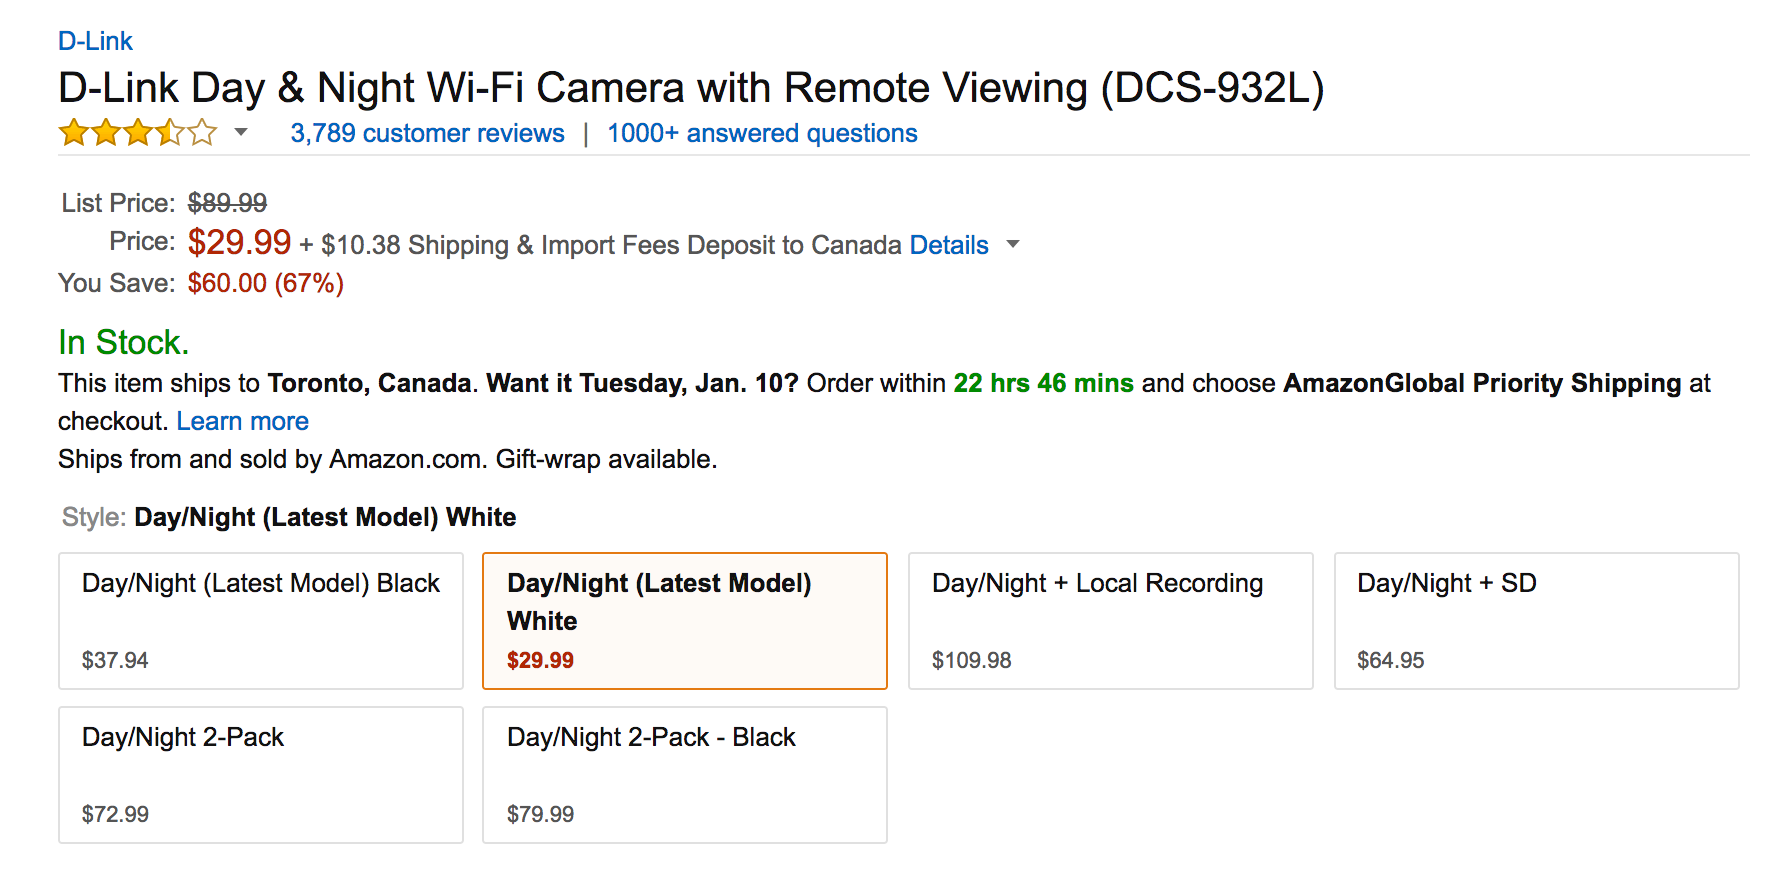 d-link-day-night-wi-fi-camera-with-remote-viewing-5